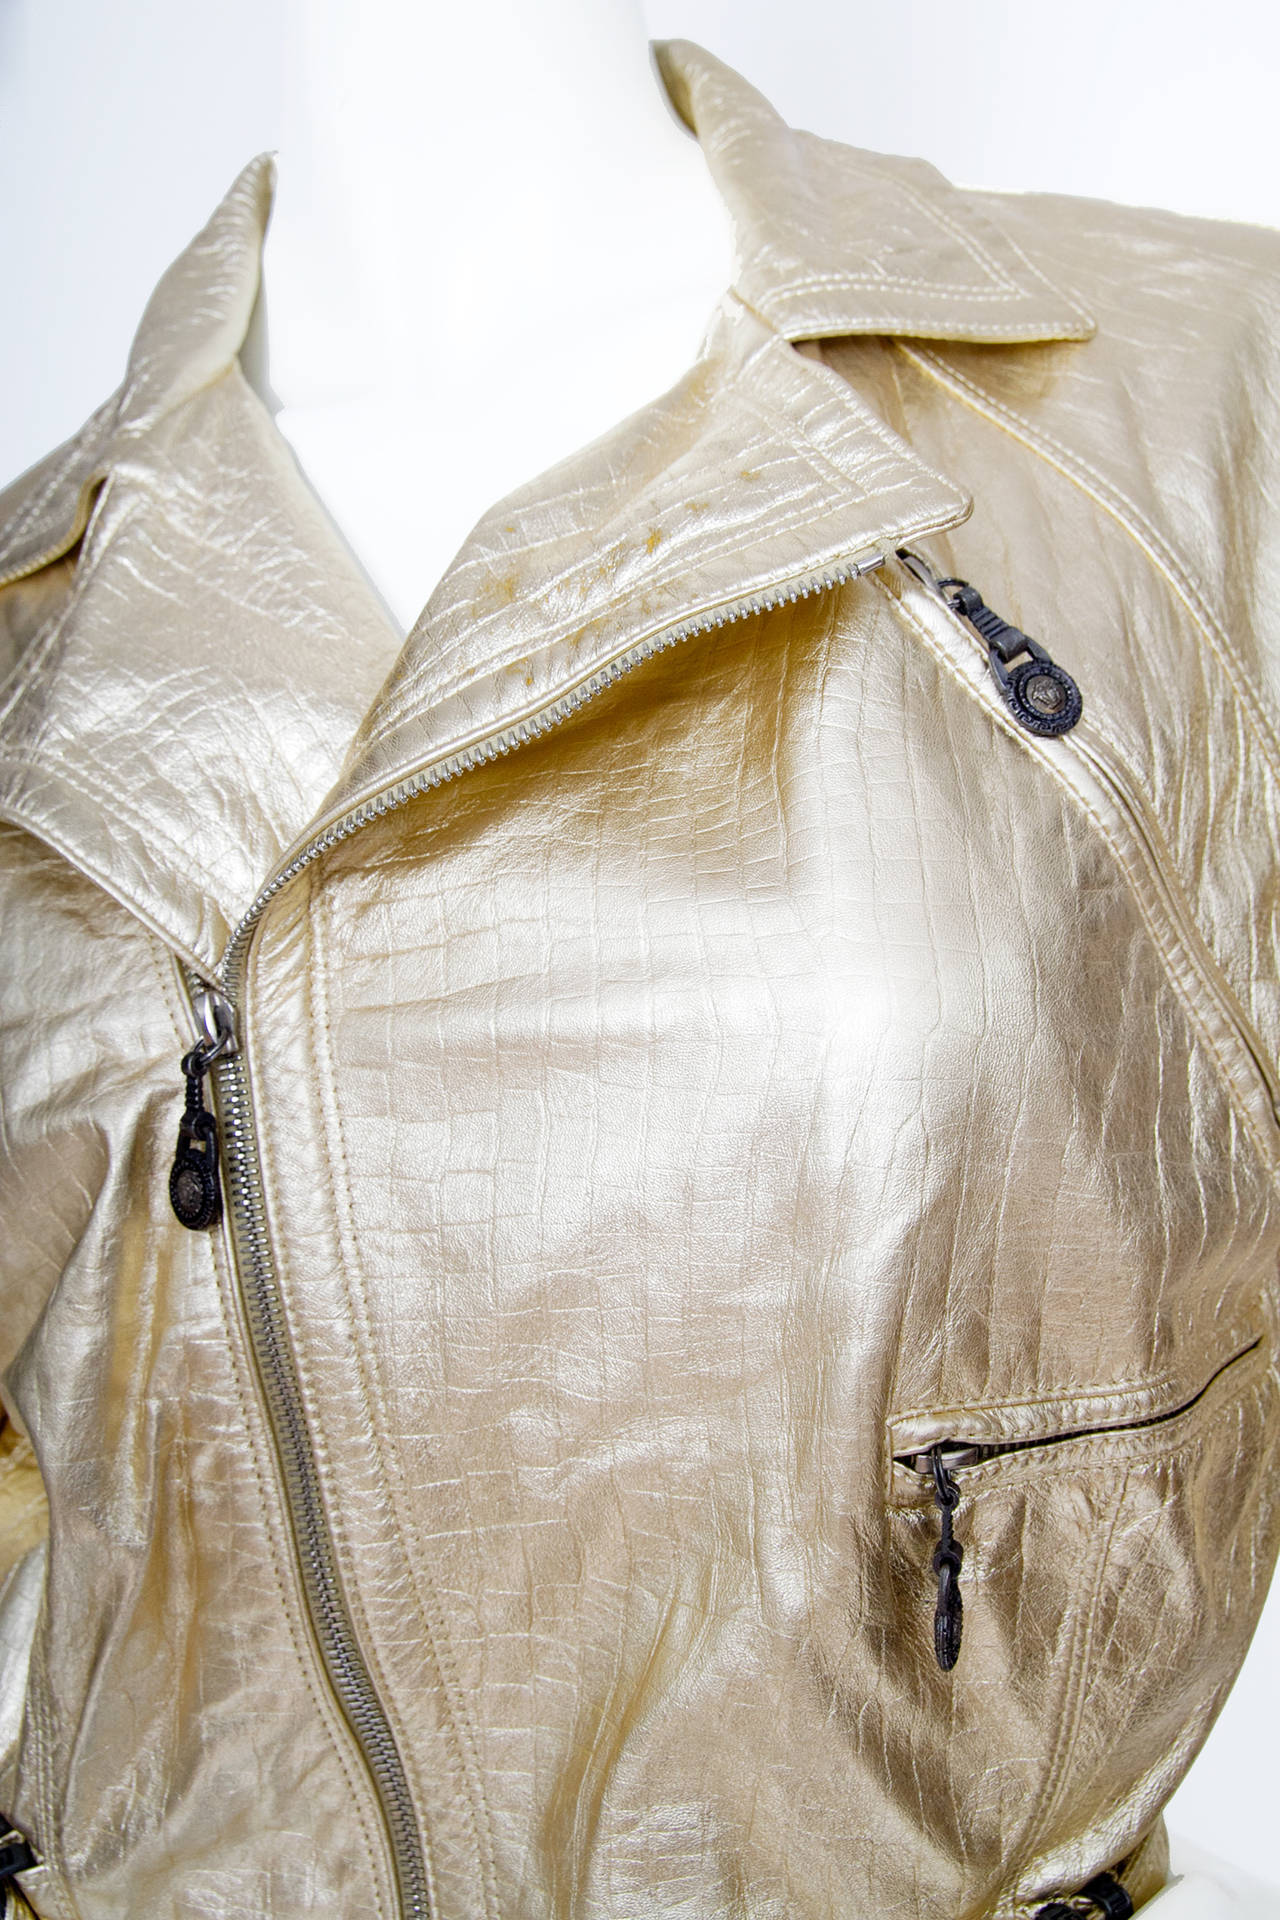 1980s Gold Gianni Versace Leather Biker Jacket For Sale 4